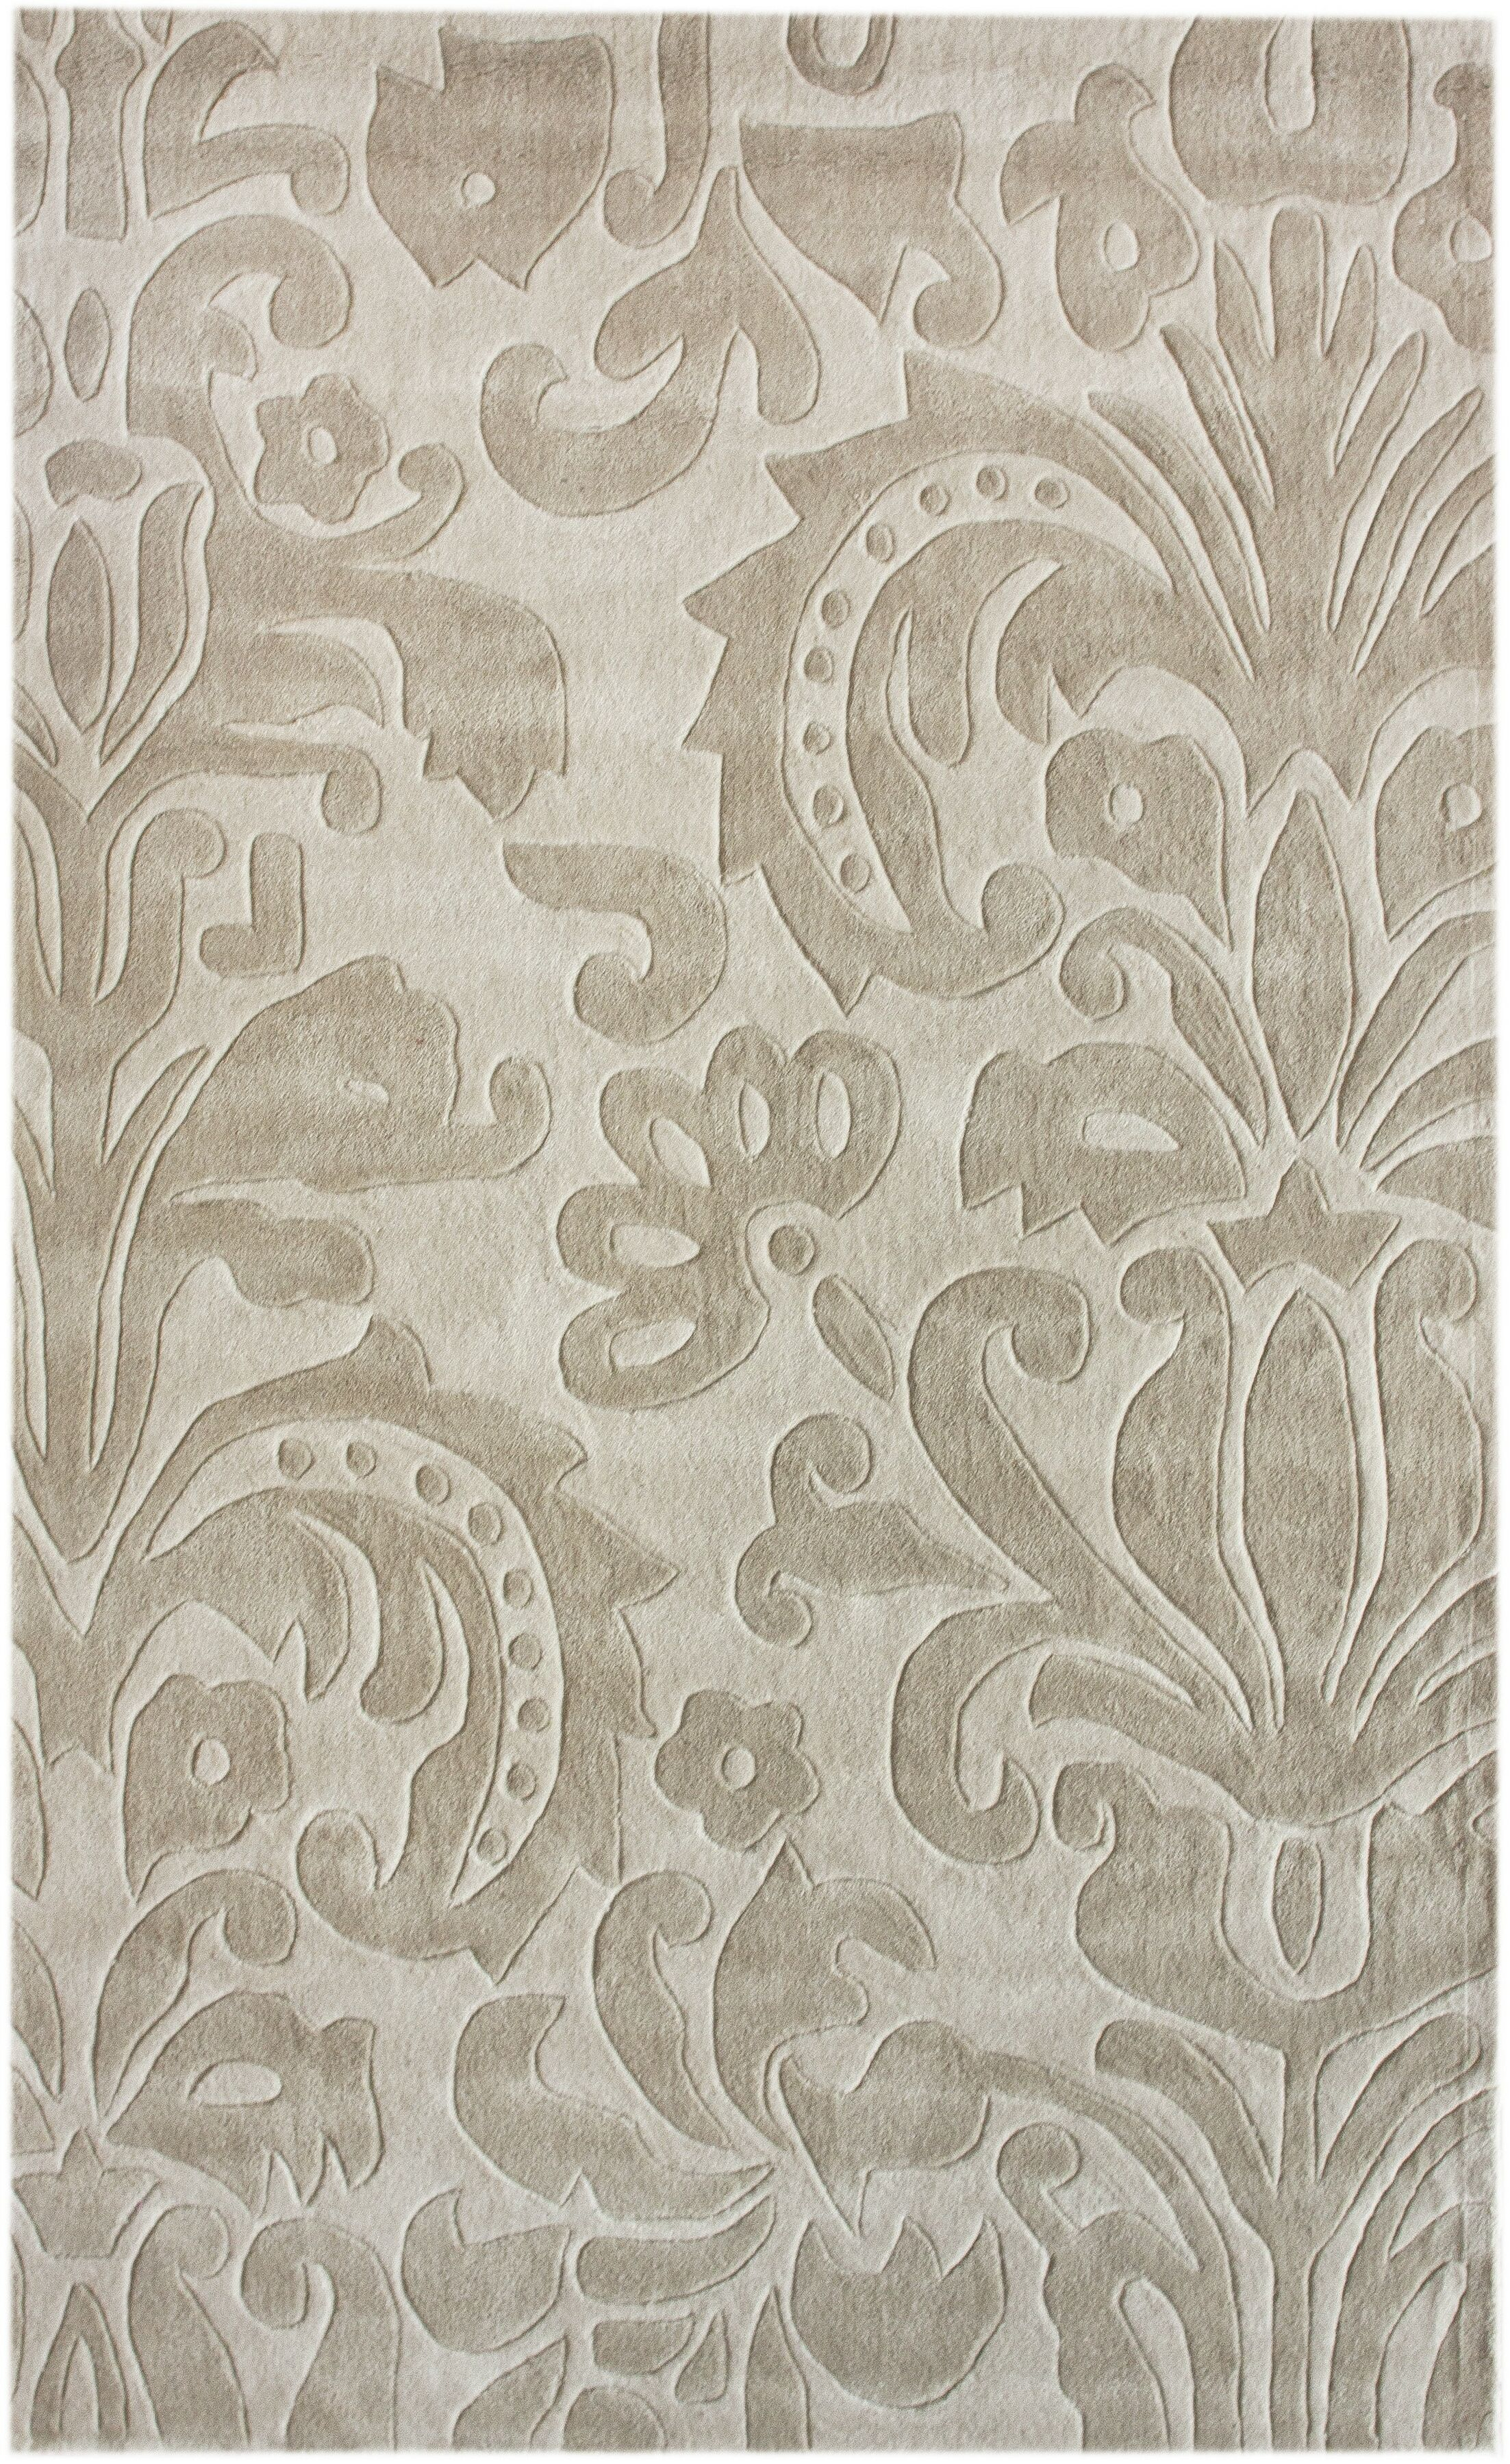 Major Hand-Tufted Beige Area Rug Rug Size: Rectangle 6' x 9'